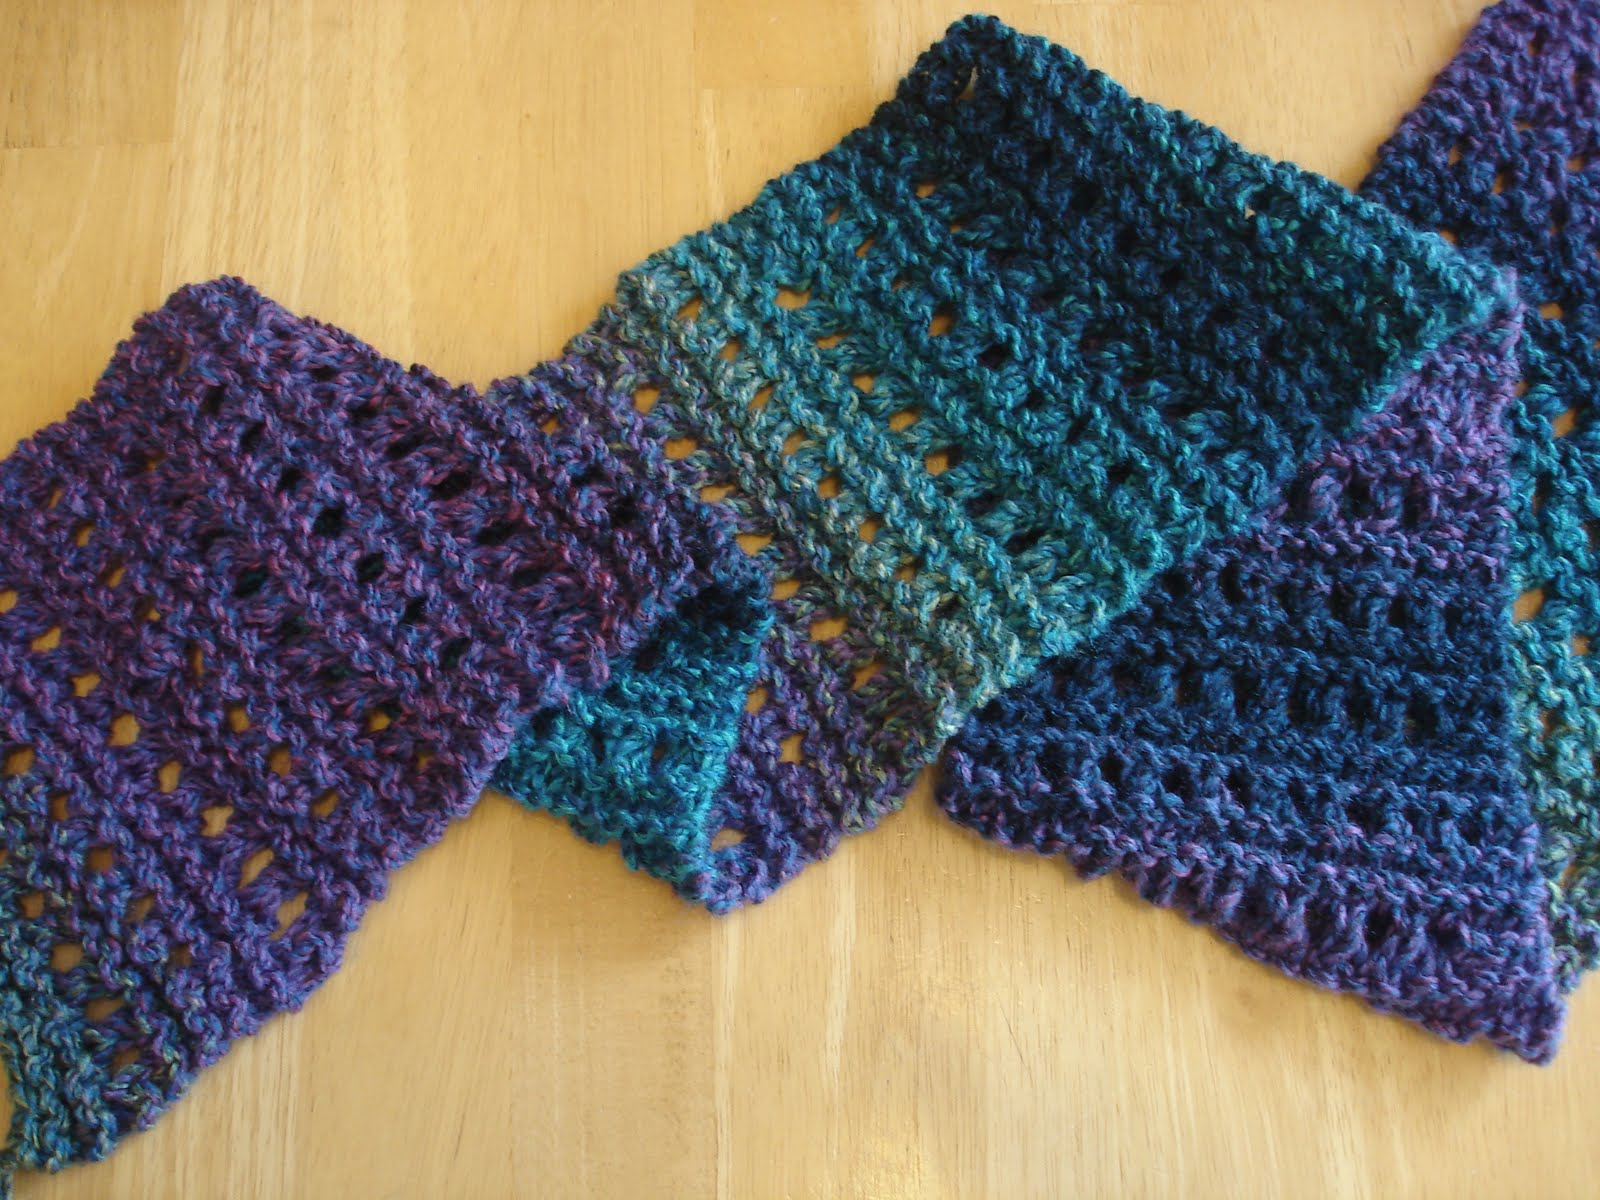 Free Knitting Stitches Patterns For Beginners : Fiber Flux: Free Knitting Pattern: Tweedy Eyelet Scarf!